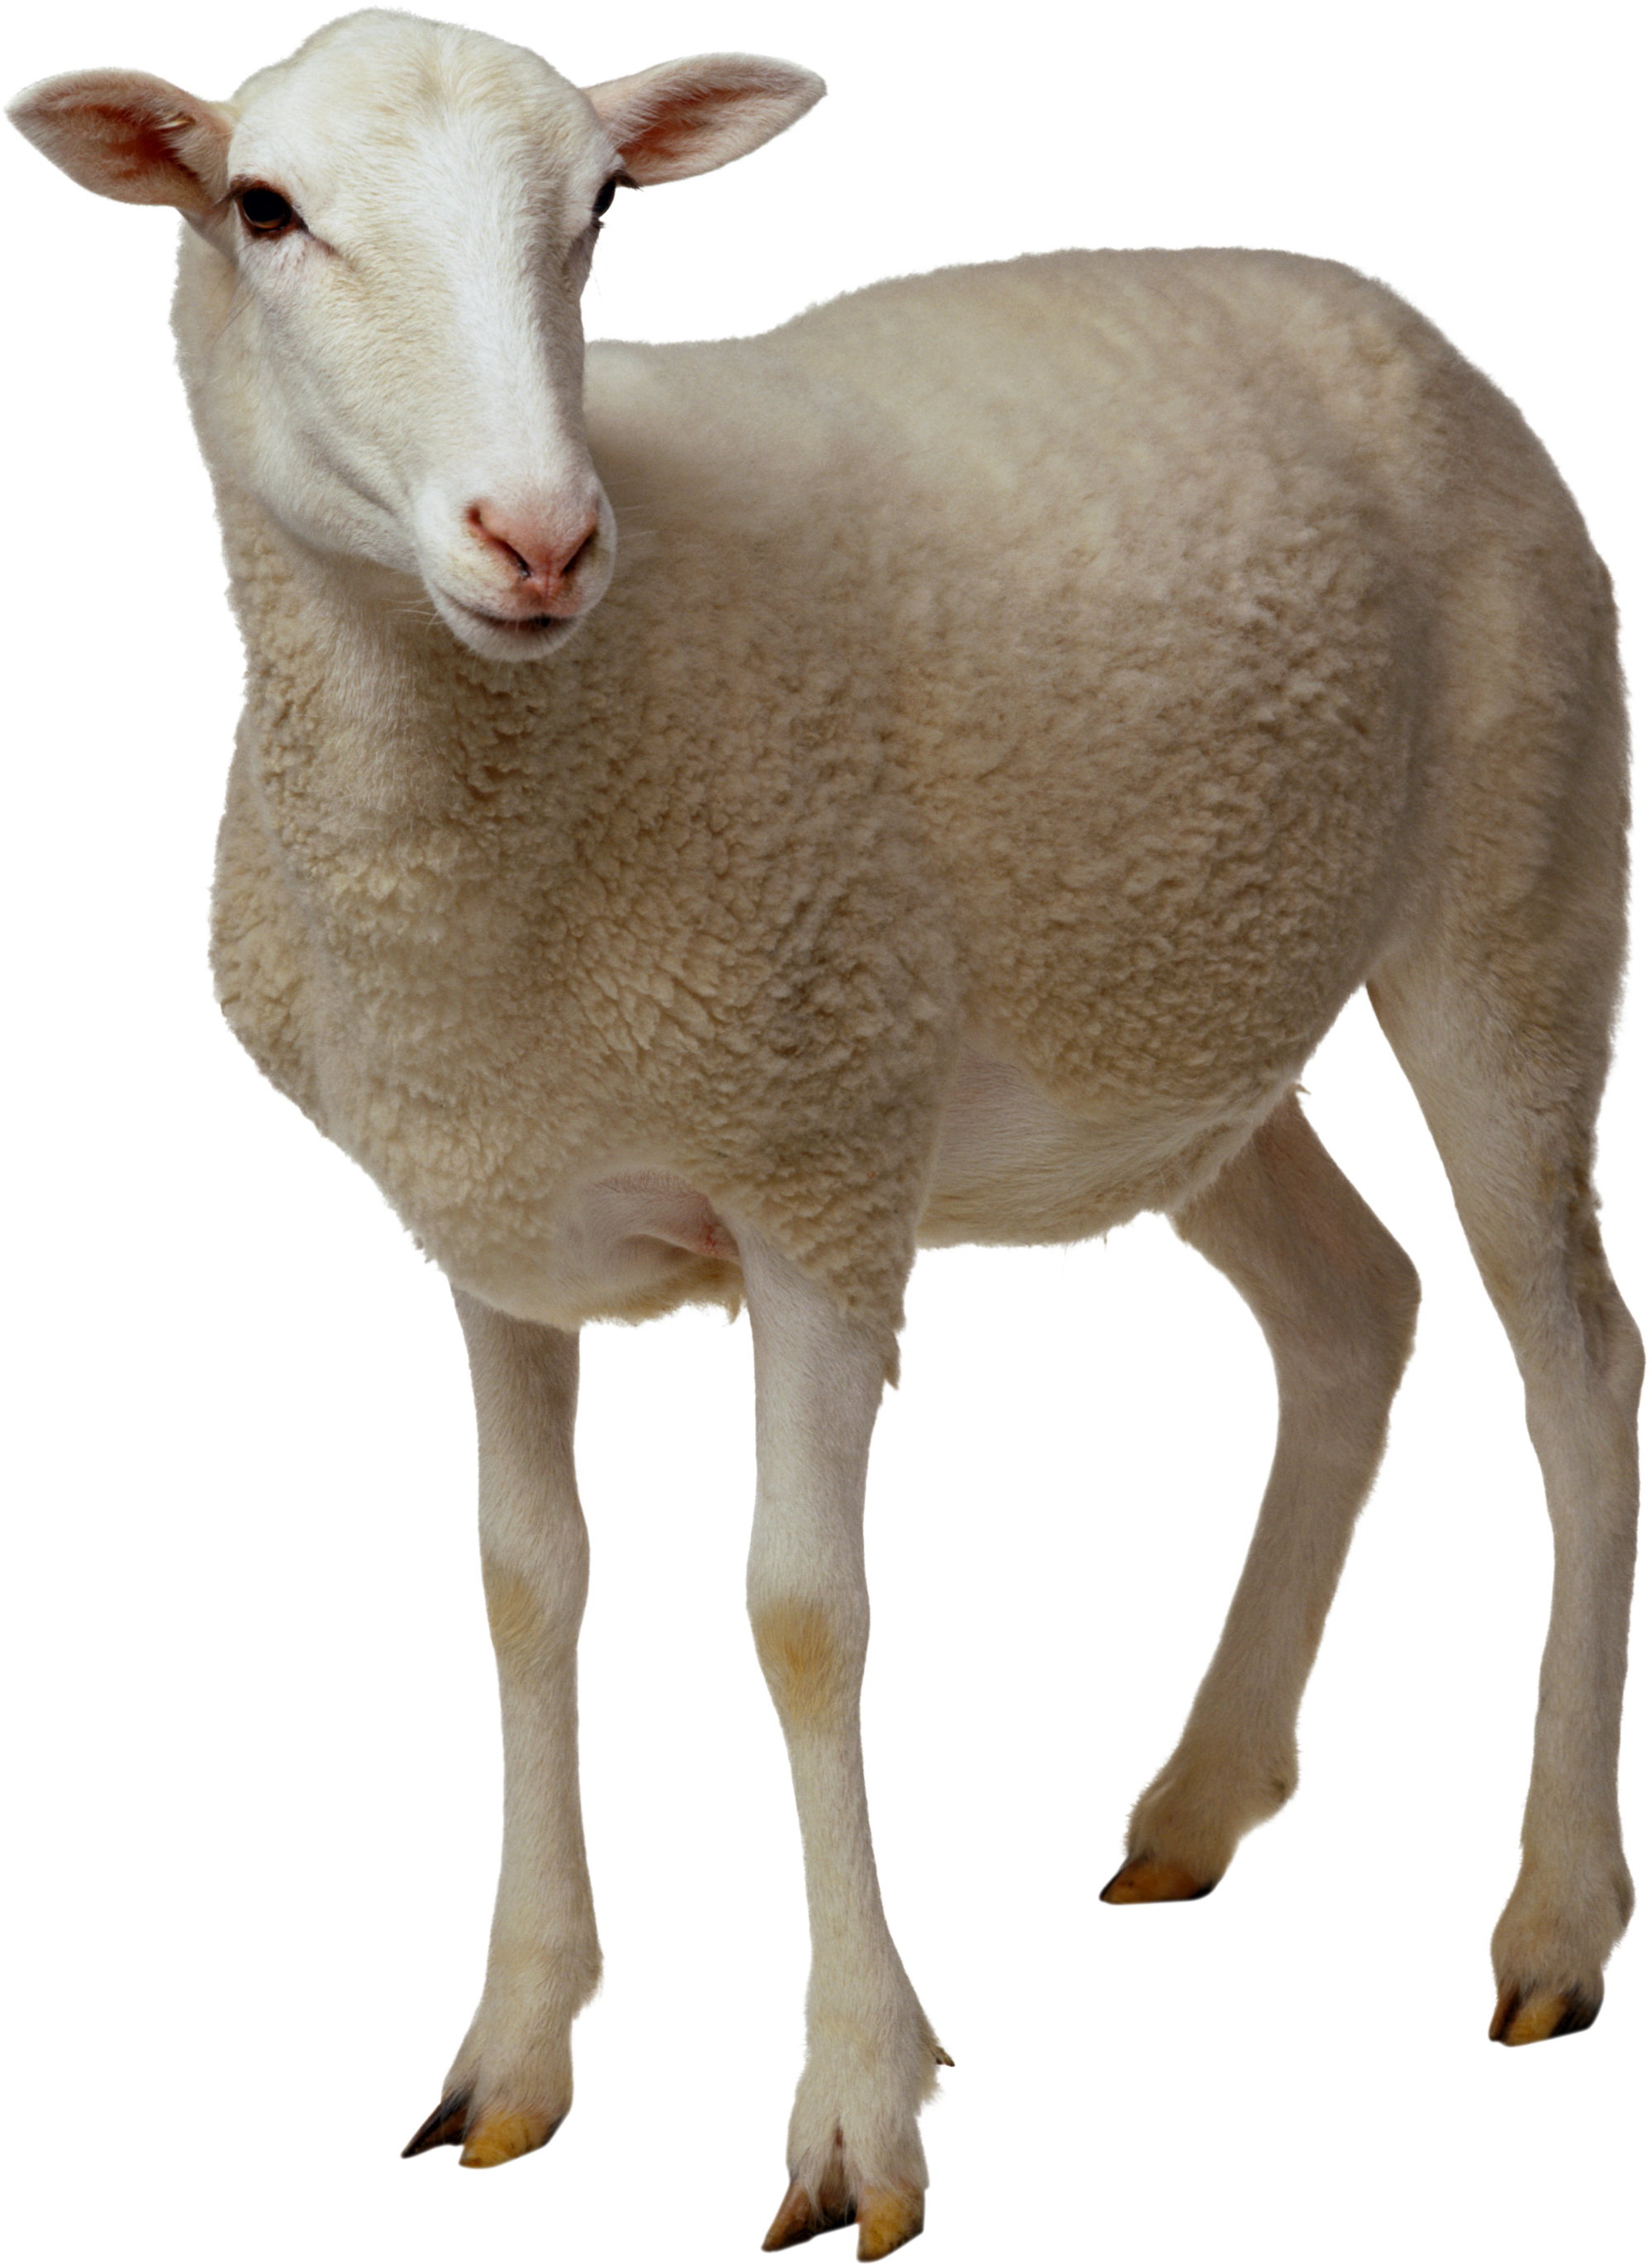 sheep png image  free download horse head vector free download horse head vector free